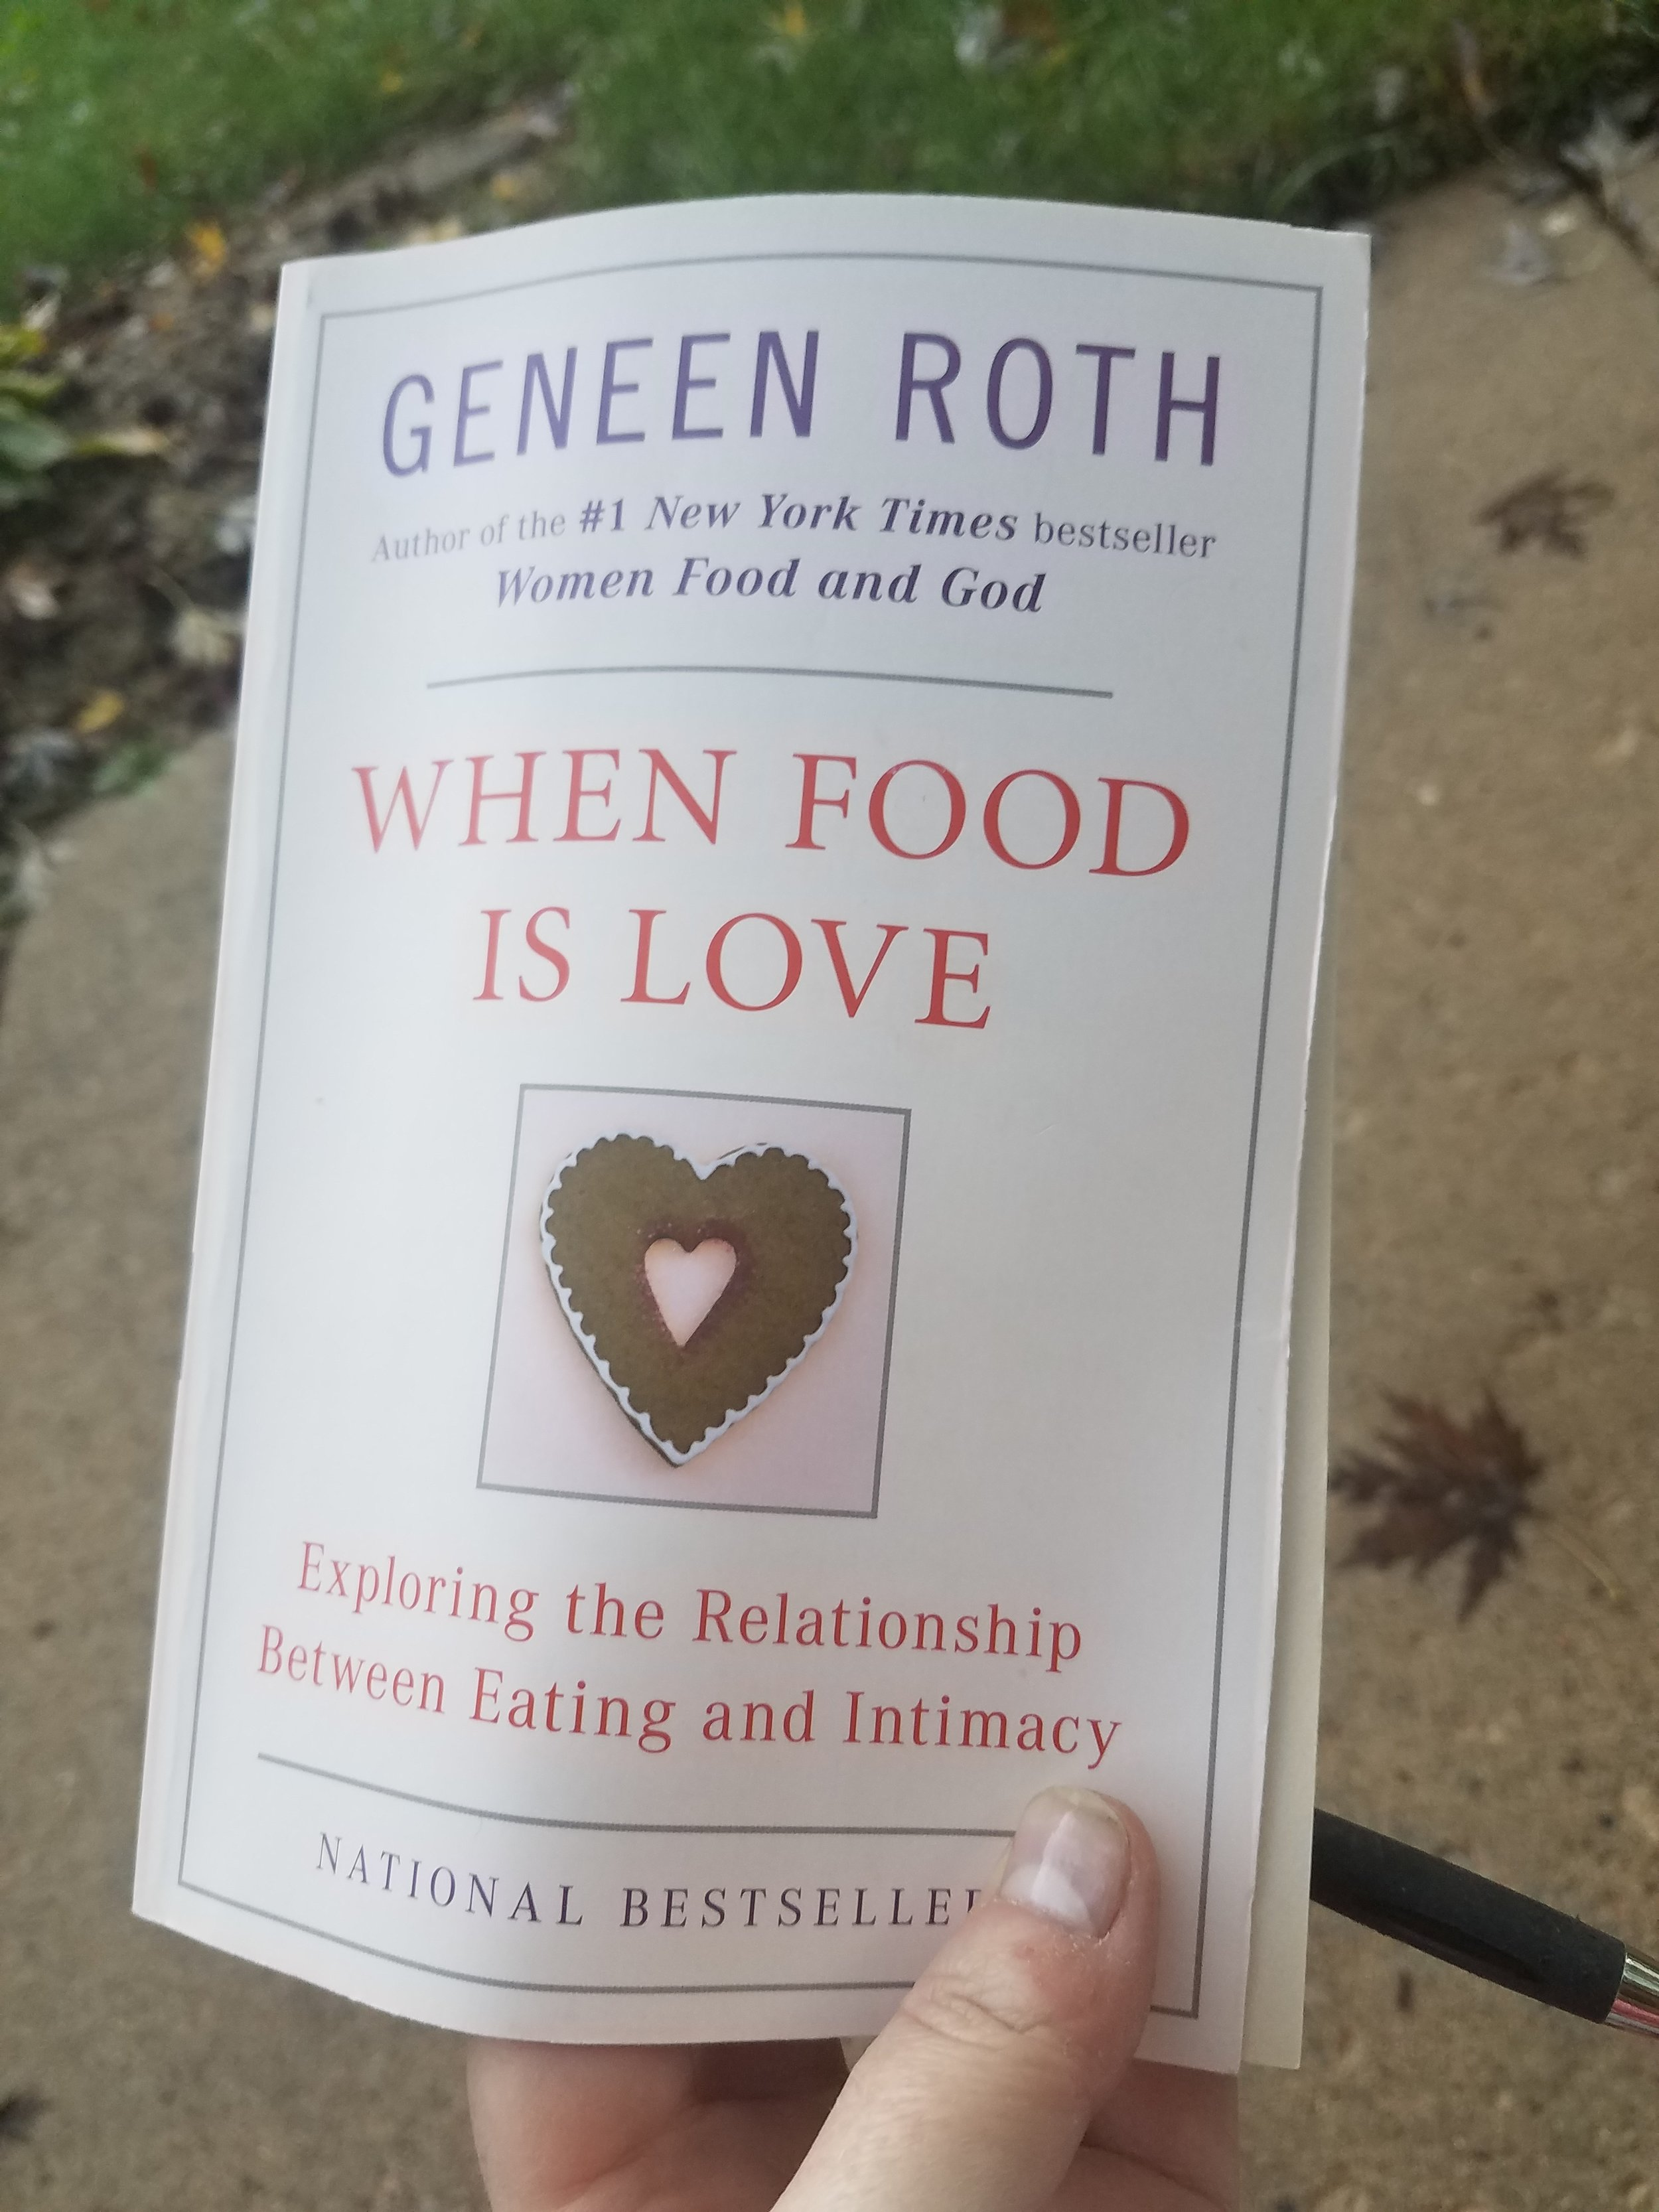 """When Food Is Love - 11/1/2018This week I've been sharing excerpts on Facebook from When Food is Love by Geneen Roth. Based on the response, they might have been hard to read. I'm facing the hidden parts of me, the parts I've scarcely admitted to myself, let alone anyone else. I'm sharing it because we're all hiding something, and we're all hiding behind something. I know what my monsters are but I'm only now starting to understand where they came from.Some of the people closest to me are surprised by all of this, and so was I! I was surprised that the trigger of my destructive compulsions that I searched for for years is rooted in my early childhood when I didn't feel safe. When nothing scared me more than being alone. I had to """"go back to what is underneath the compulsion, to the pain that shaped it and made it necessary,"""" and when I did I found myself seven years old grasping for something solid to hold onto and coming up empty.Even more surprising than the origin is its reach. I knew the fingers of childhood pain extended into my adult life, but I didn't realize their hold kept me suspended, forever on pause, non-committal, and always ready to run (a recent heart mapping test at work showed I'm stuck in fight-or-flight dominance, even when there is no danger). It's even contributed to my obsession with wanting what is forbidden, the cornerstone of almost all my past relationships—my wonderful husband excluded.I've been an island, anti-dependent, """"the cactus."""" I am prickly and isolated because at one time I needed to be, and I never figured out how to stop. Sometimes hugs make me uncomfortable. Sometimes saying, """"I love you,"""" hurts for reasons I can't explain. The frustration and confusion that's surrounded me and my precious island like a fog is finally starting to lift.It's cliché, but the way out really is through. If I keep turning my face away from this monster, I'll keep repeating the same behaviors over and over for the rest of my life. Facing the monster i"""